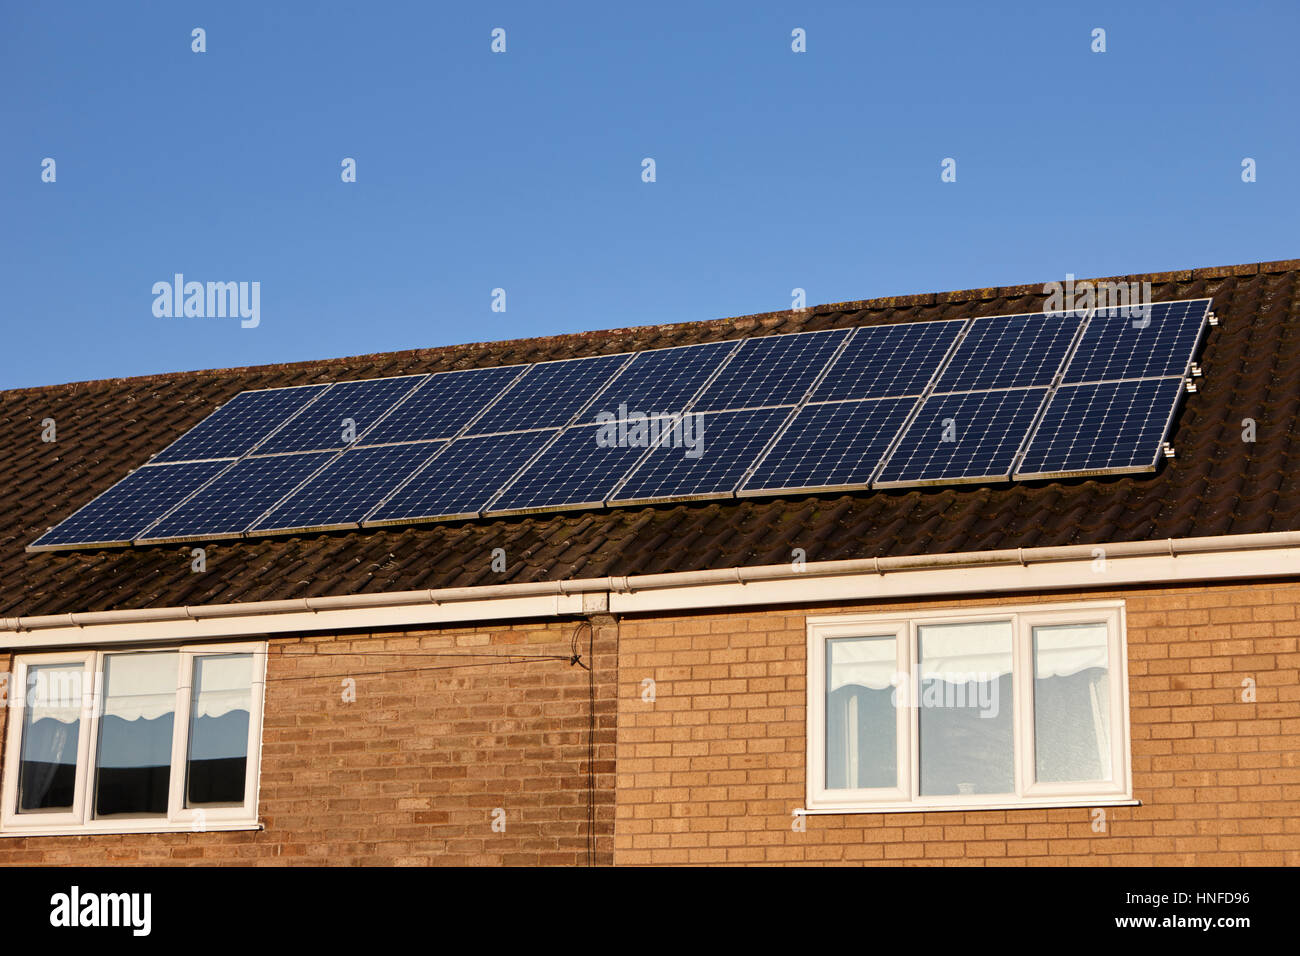 solar panels on the roof of a house in liverpool uk - Stock Image